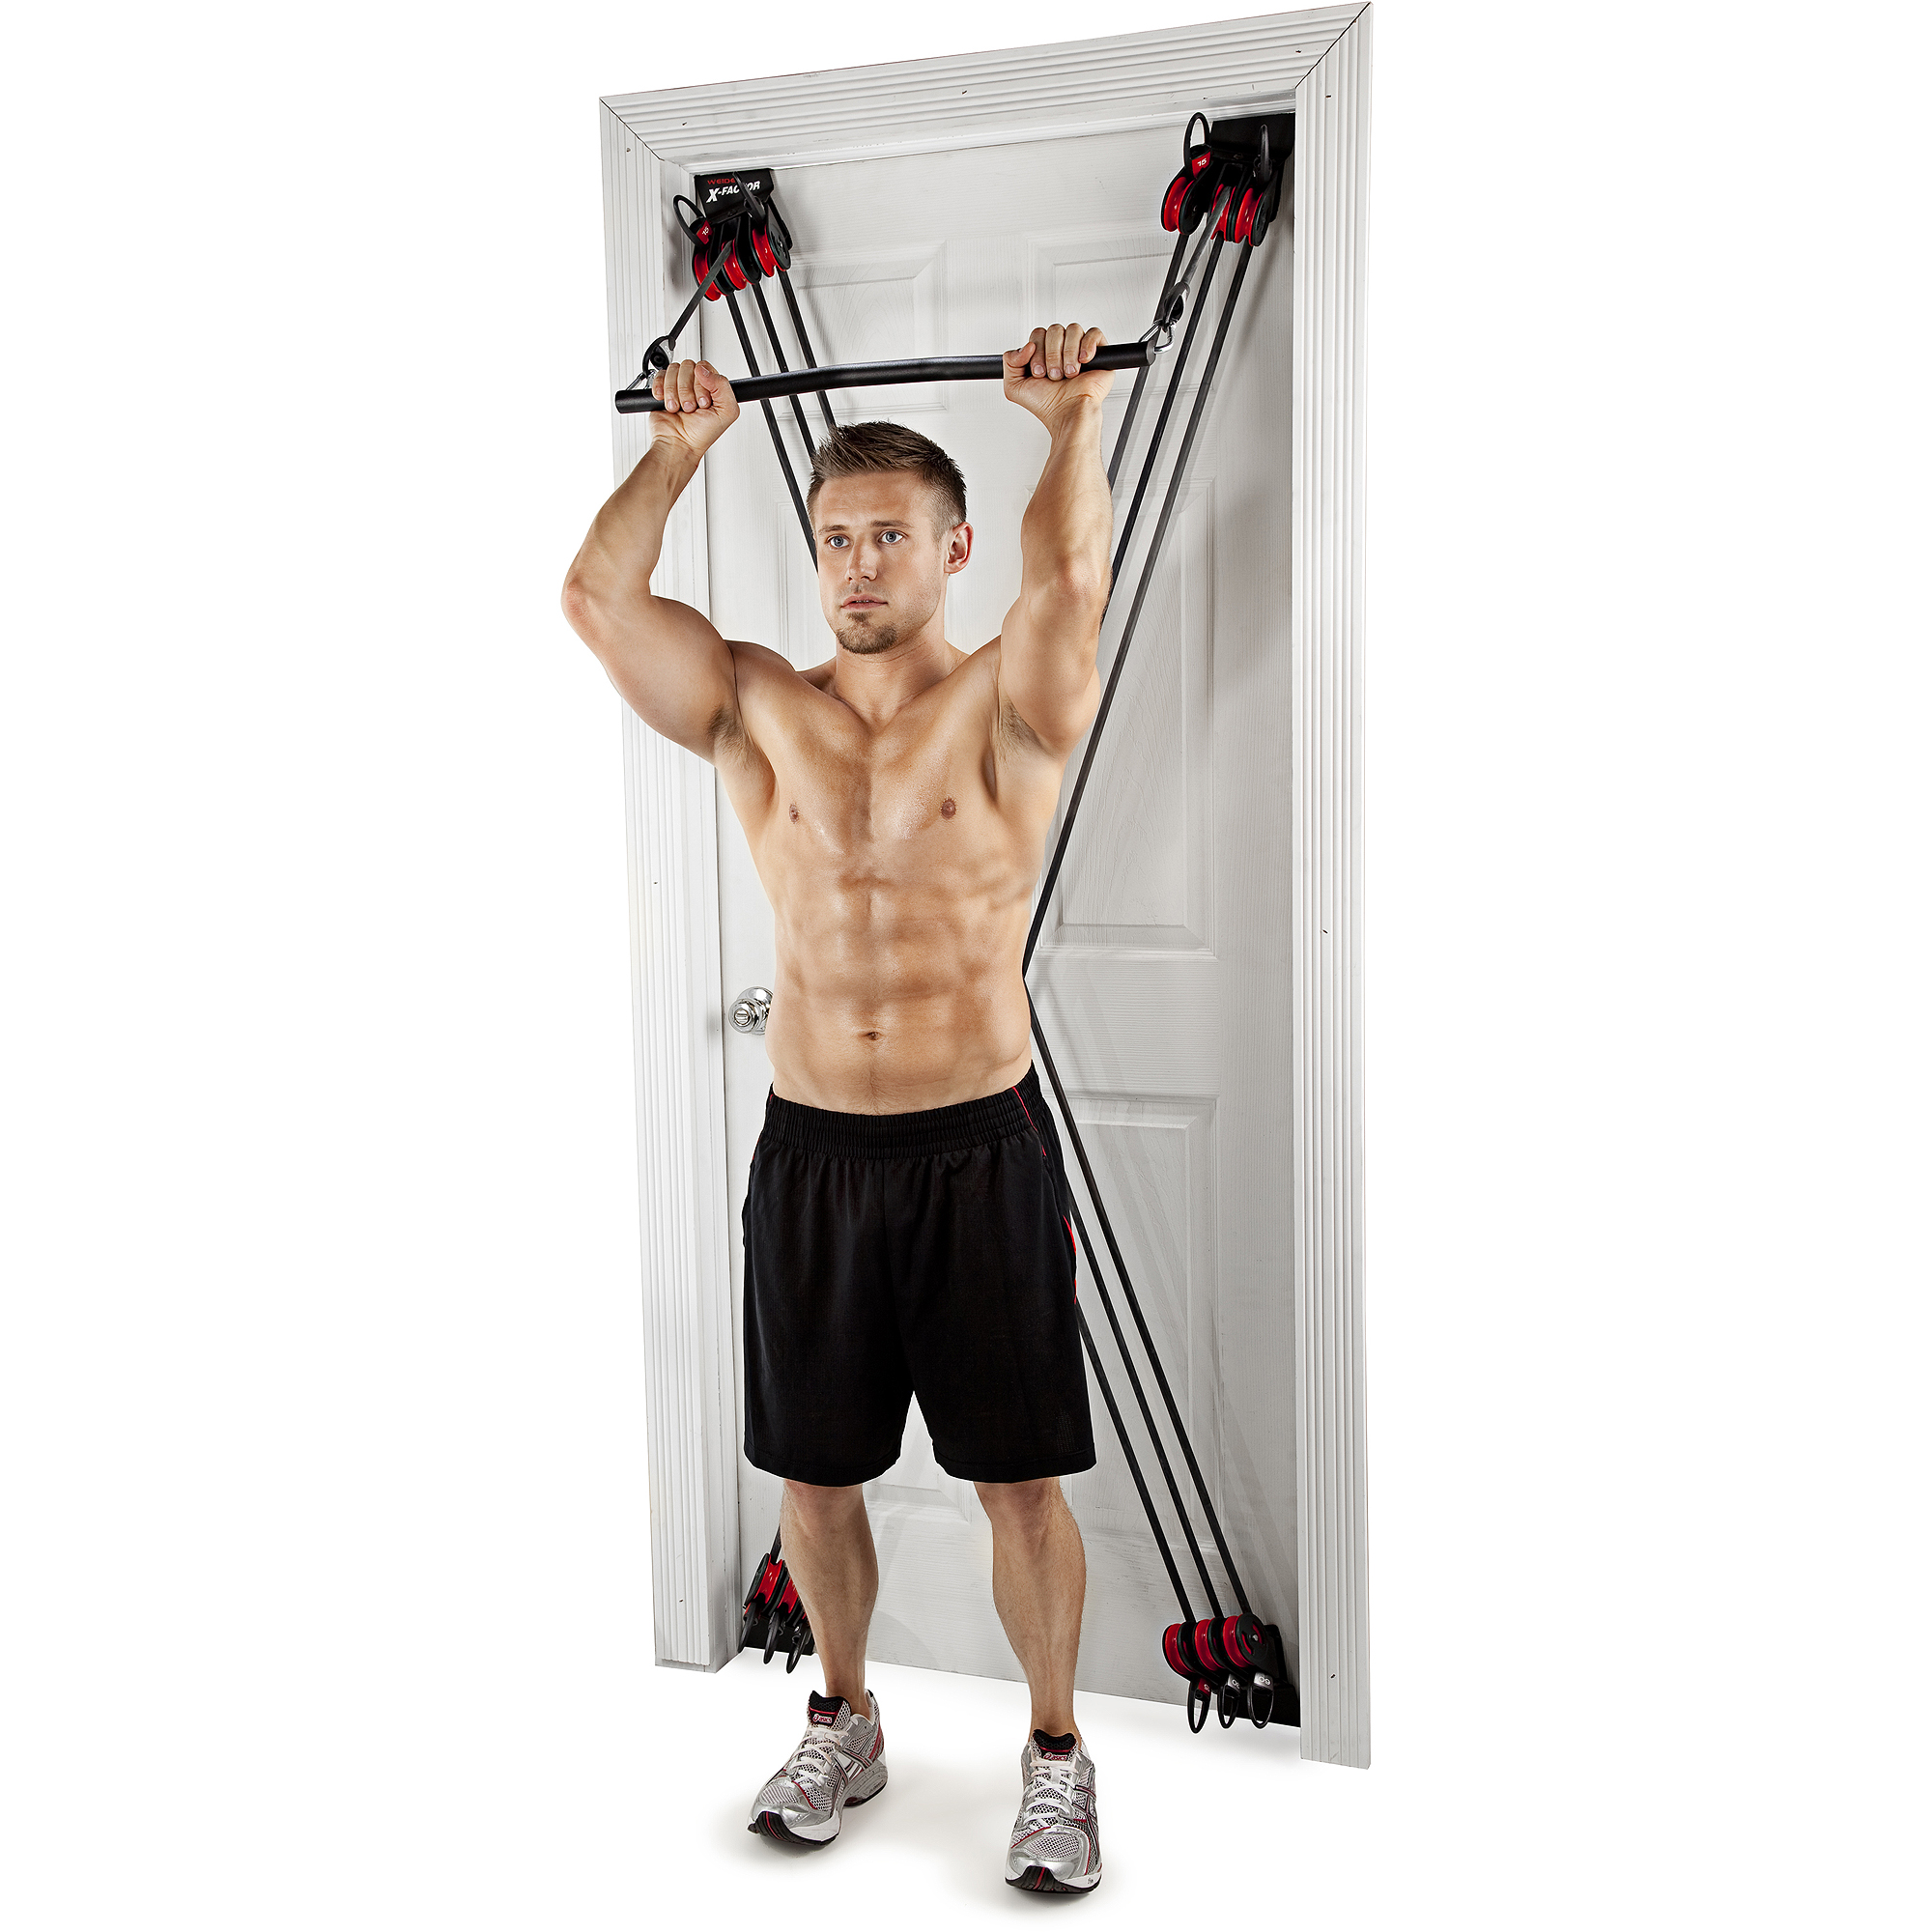 As Seen On TV Weider X-Factor Door / Home Gym